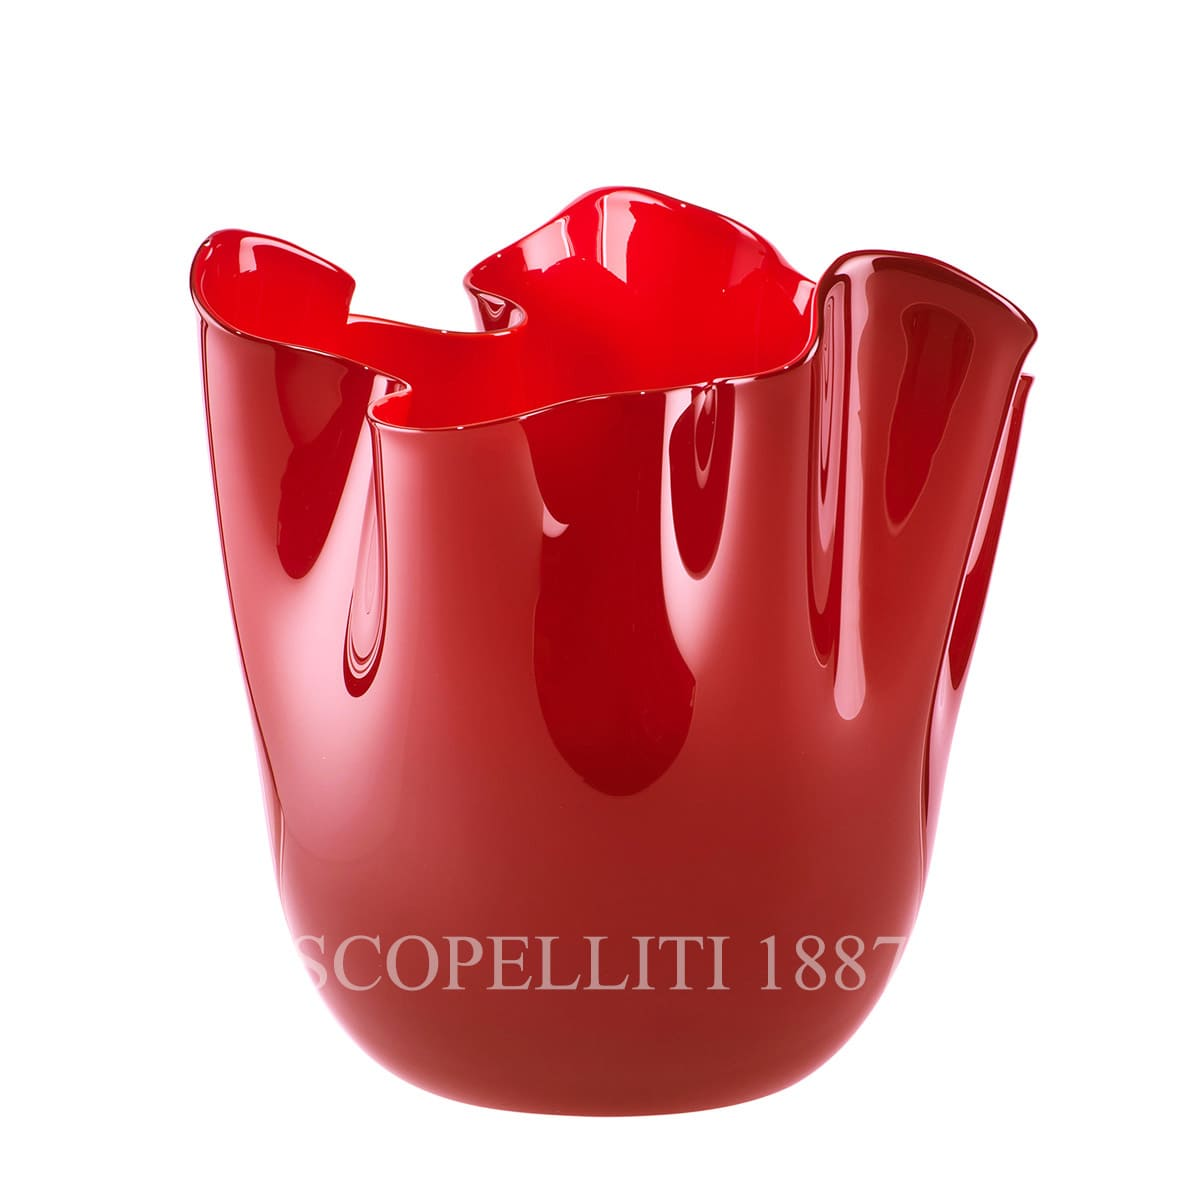 venini gift fazzoletto large red vase